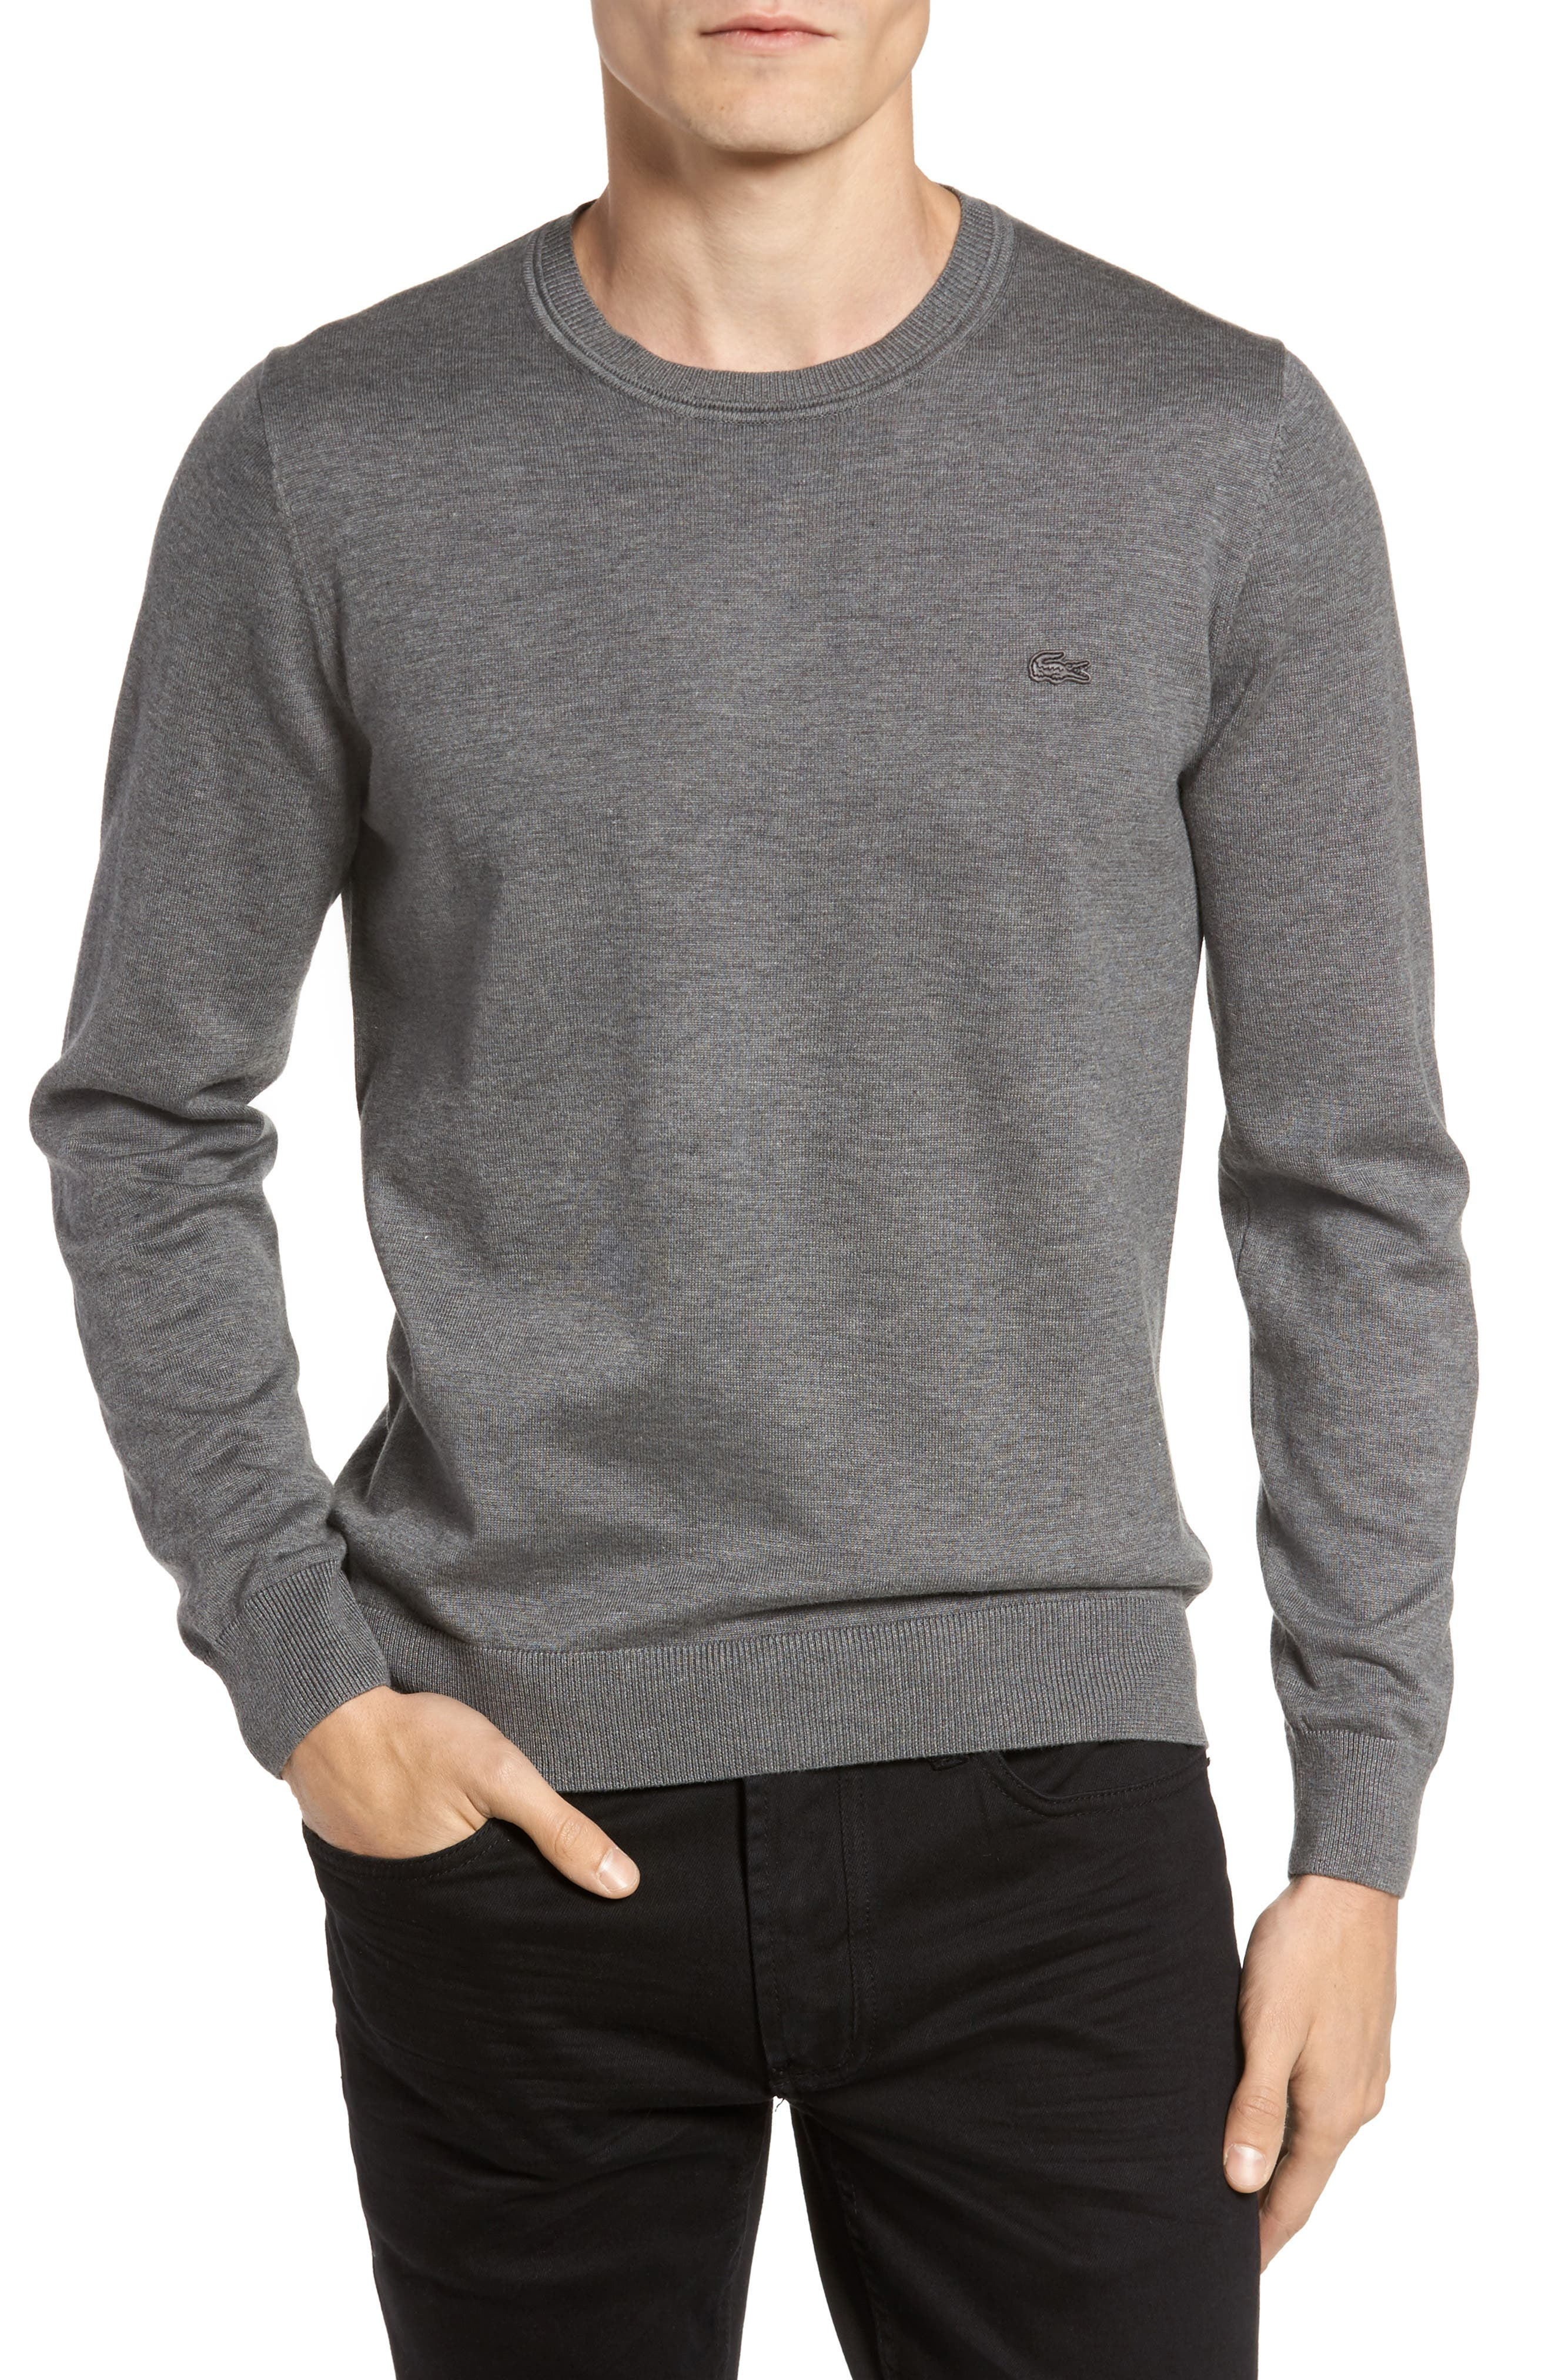 Main Image - Lacoste Jersey Knit Crewneck Sweater